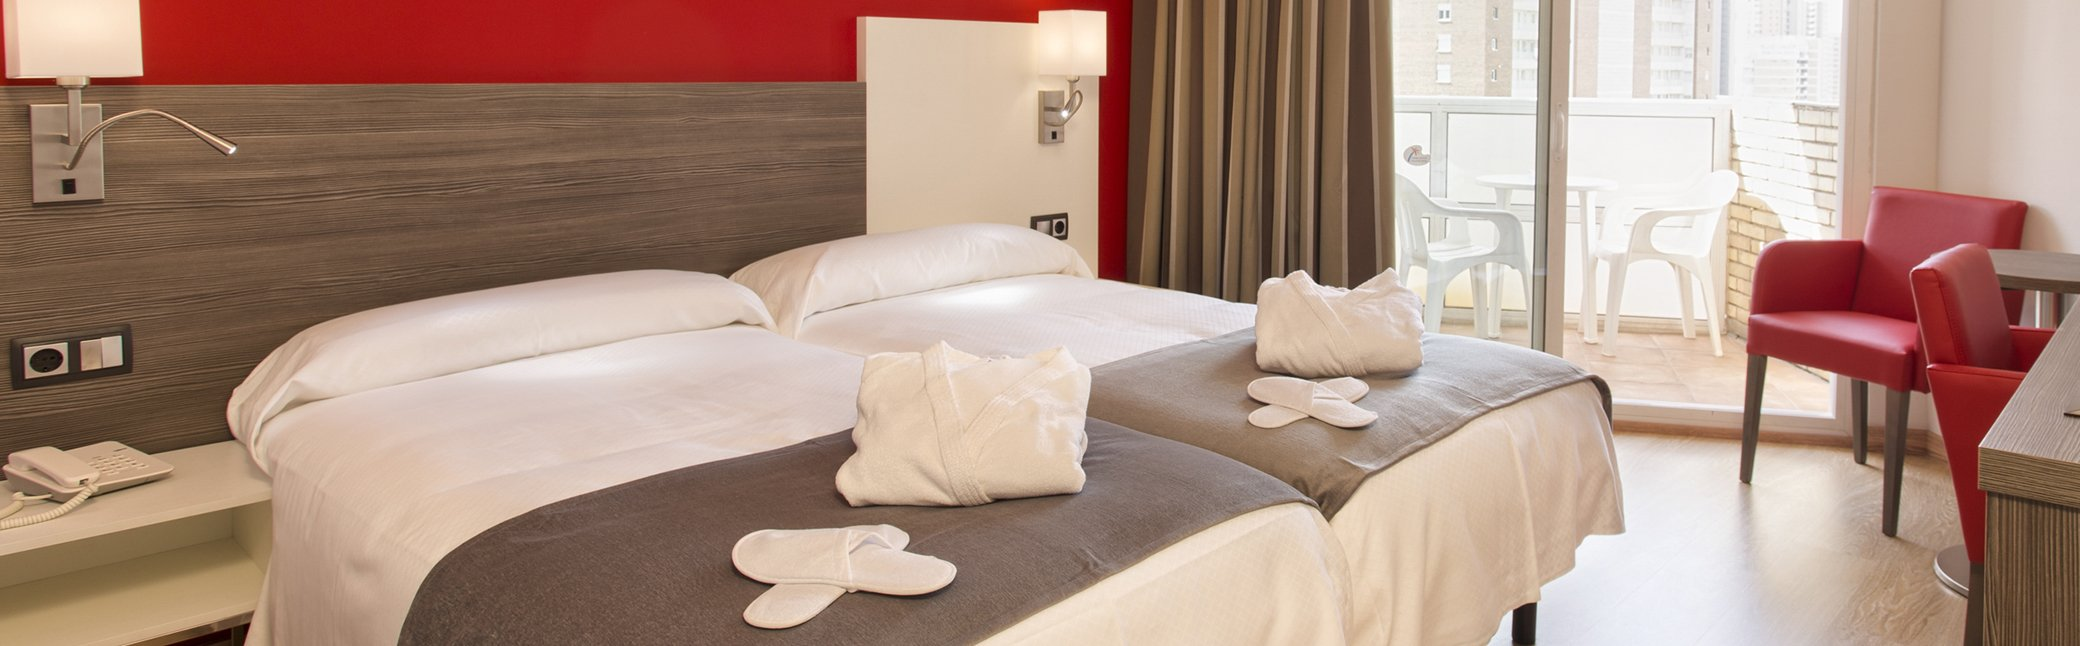 HOTEL RIUDOR  -  ENJOY MORE COMFORT